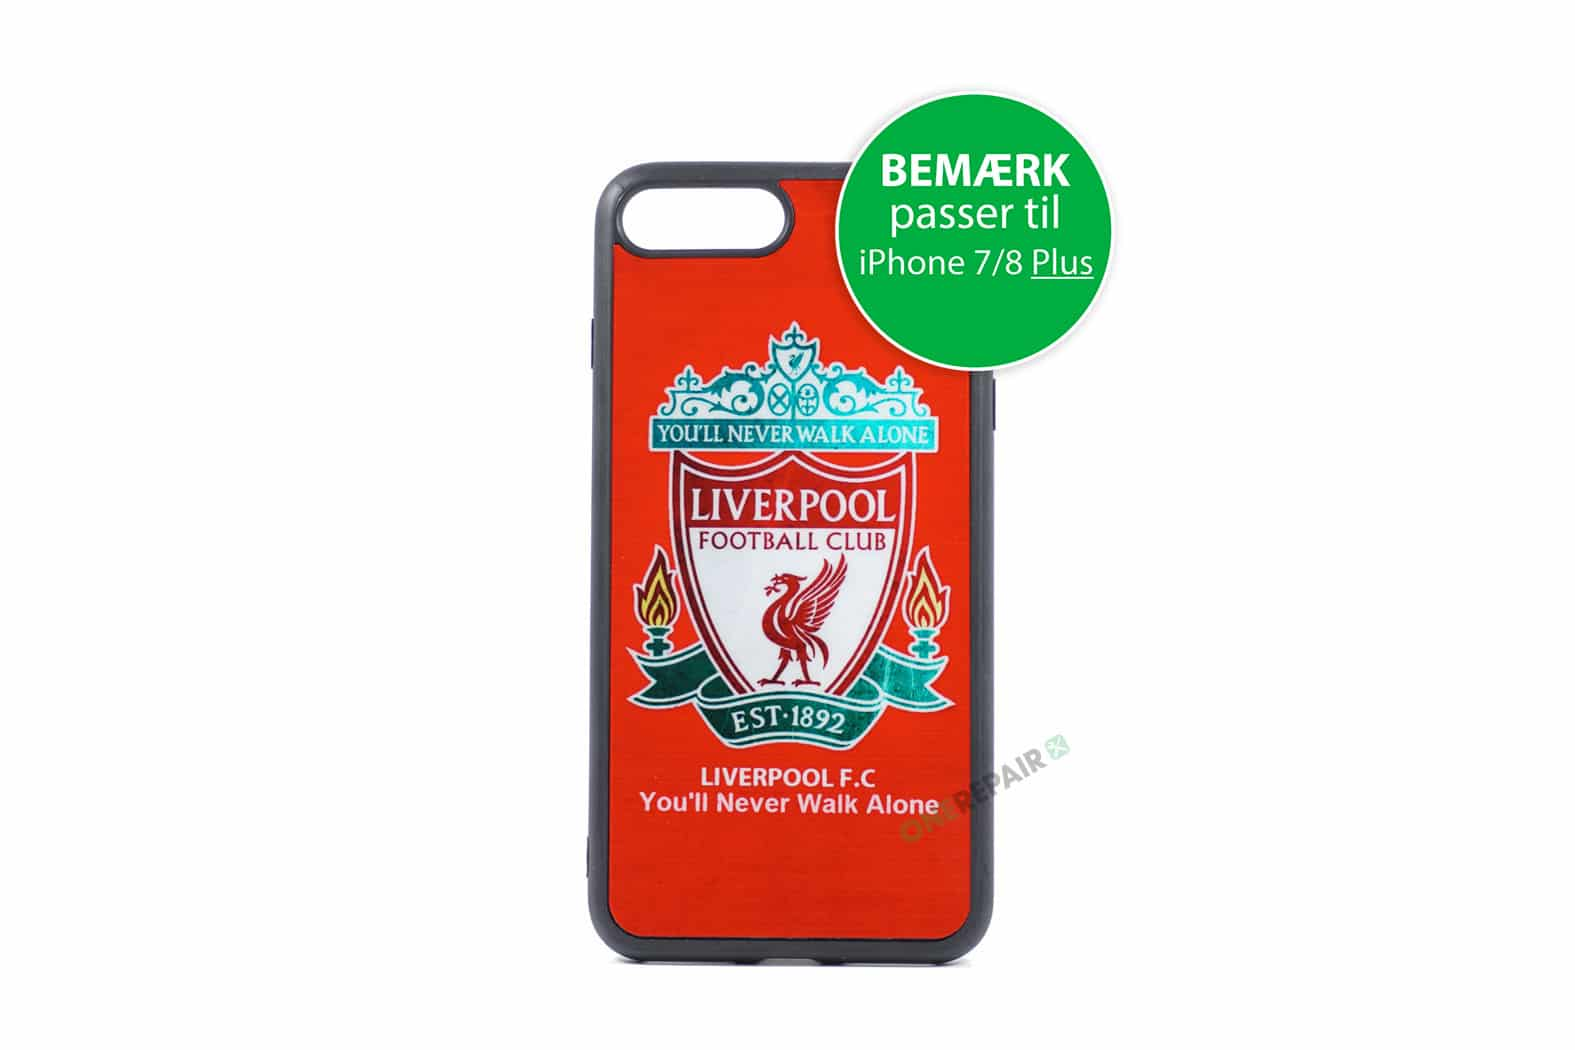 350856_iPhone_7+_8+_Plus_Fodbold_Liverpool_YNWA_Red_Cover_Roed_OneRepair_WM_00001